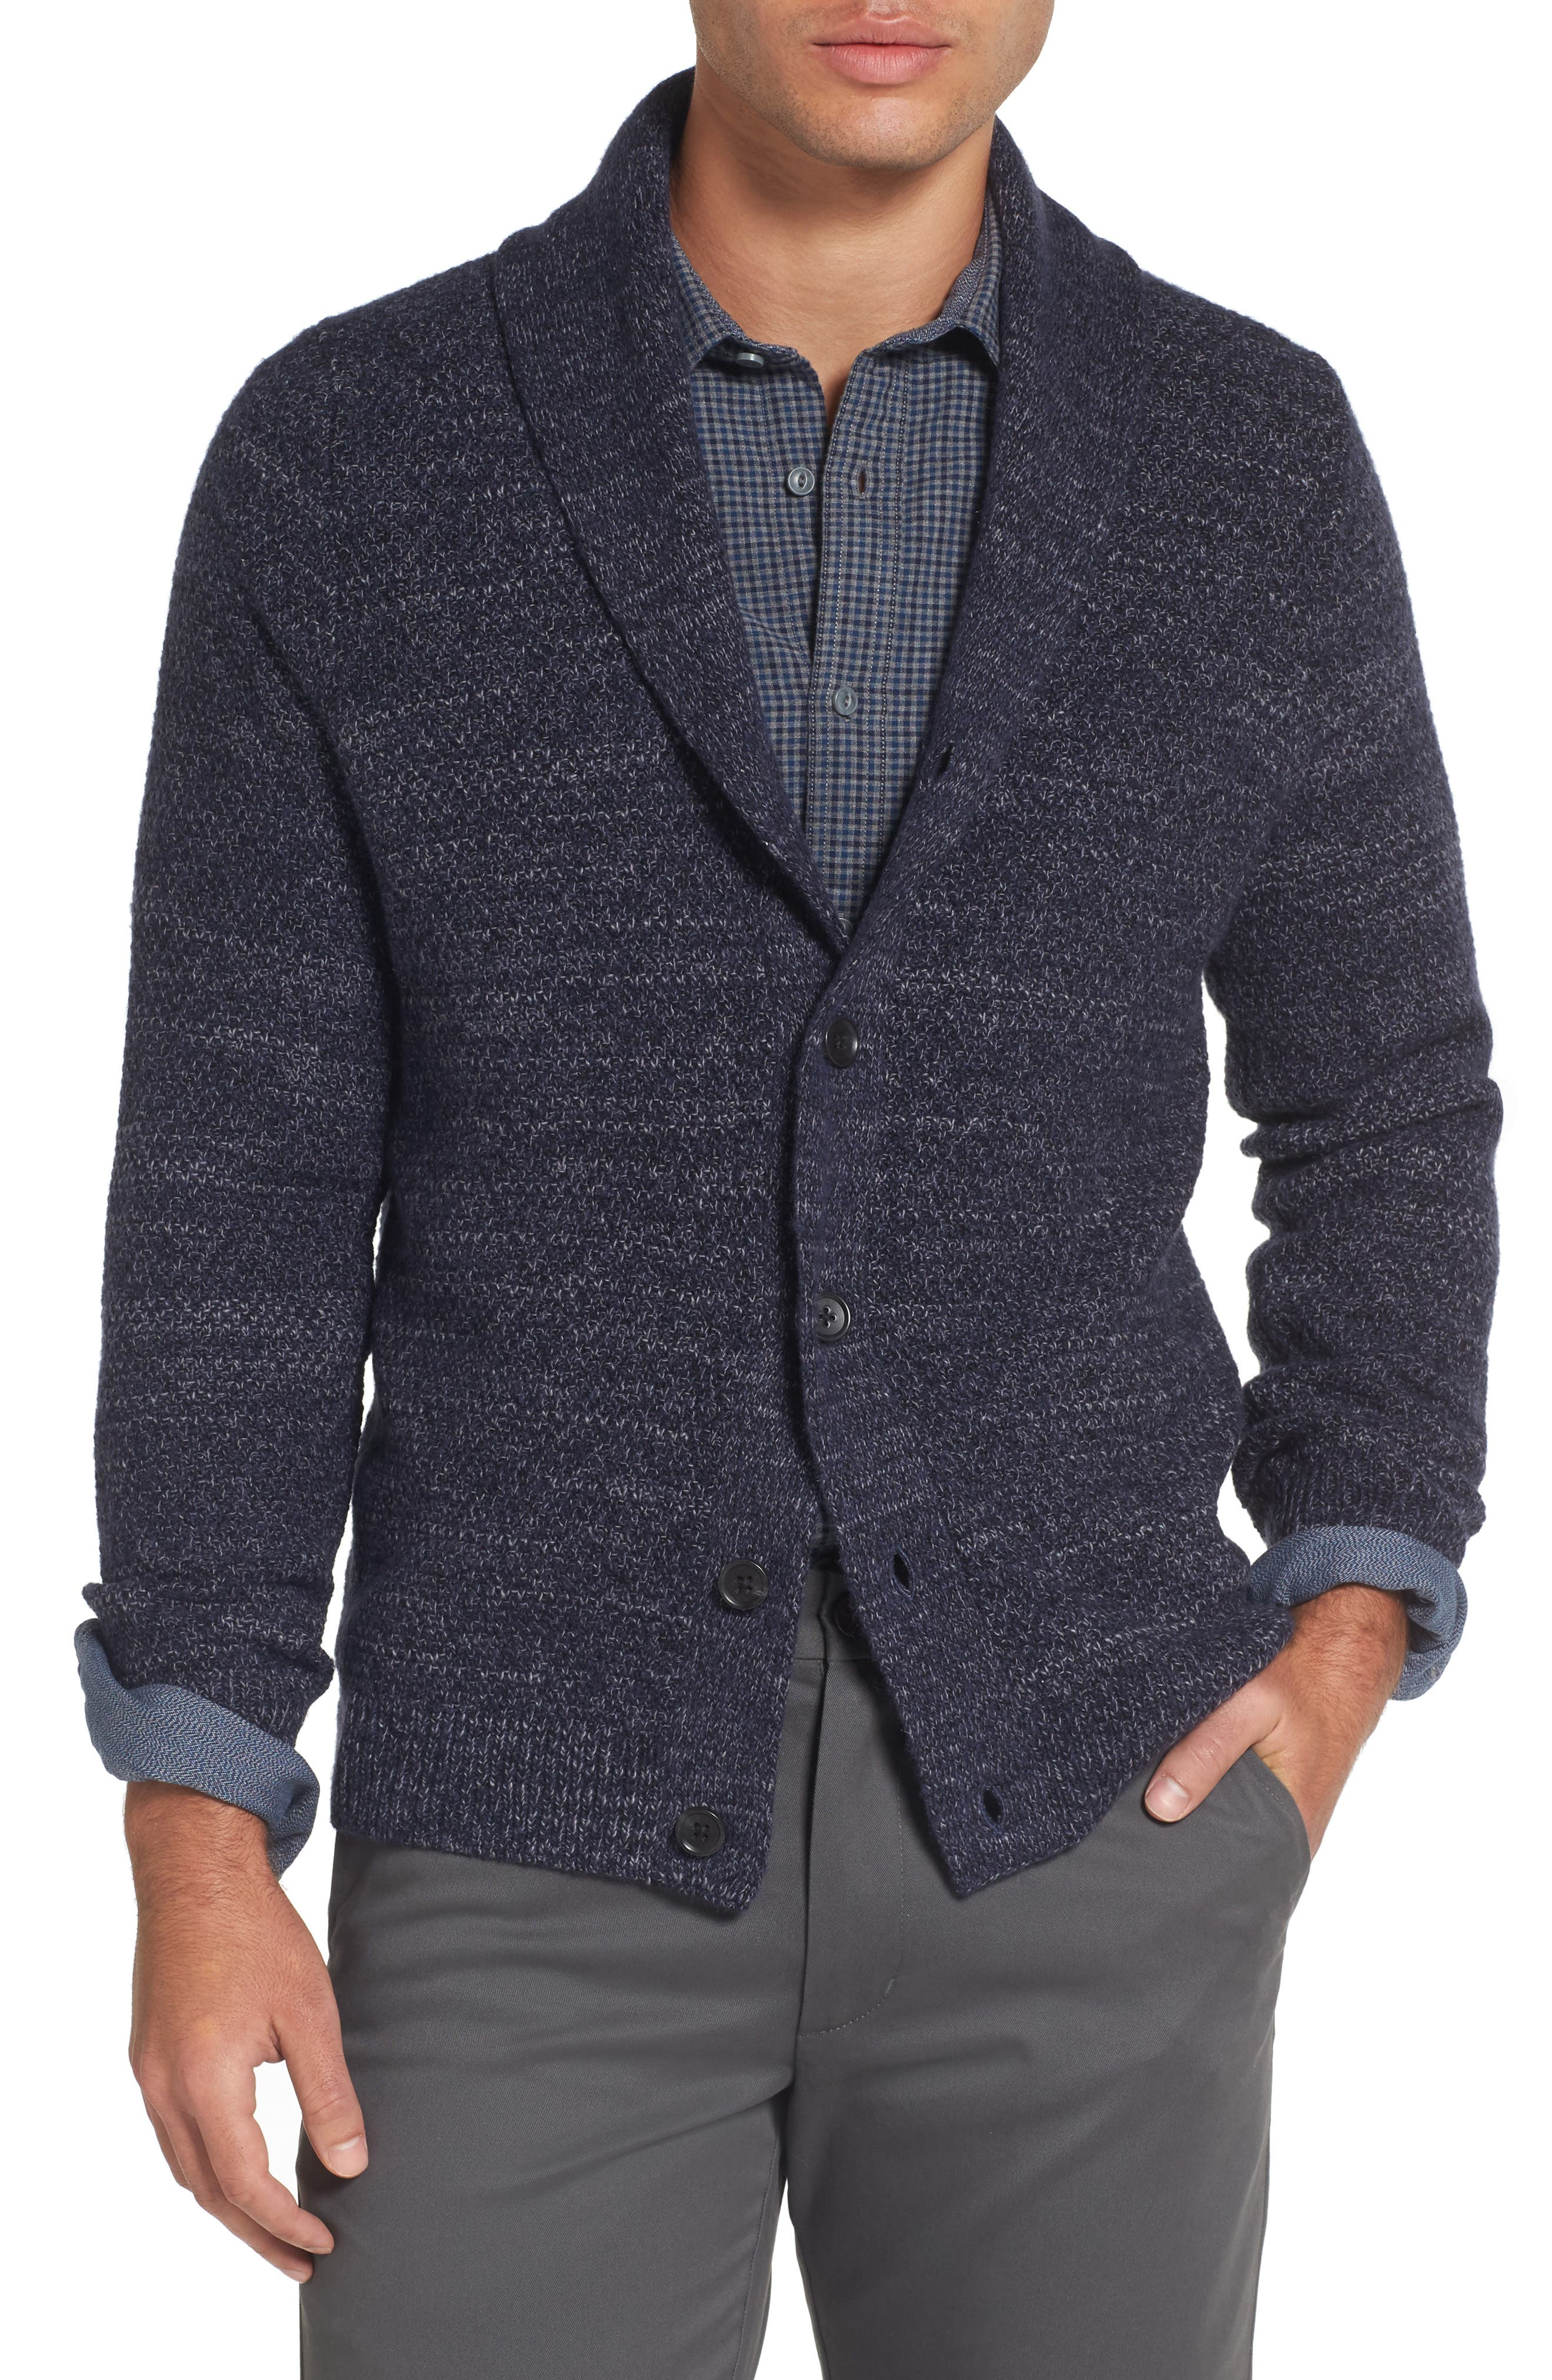 Shawl Collar Cardigan,                         Main,                         color, Navy Iris Combo